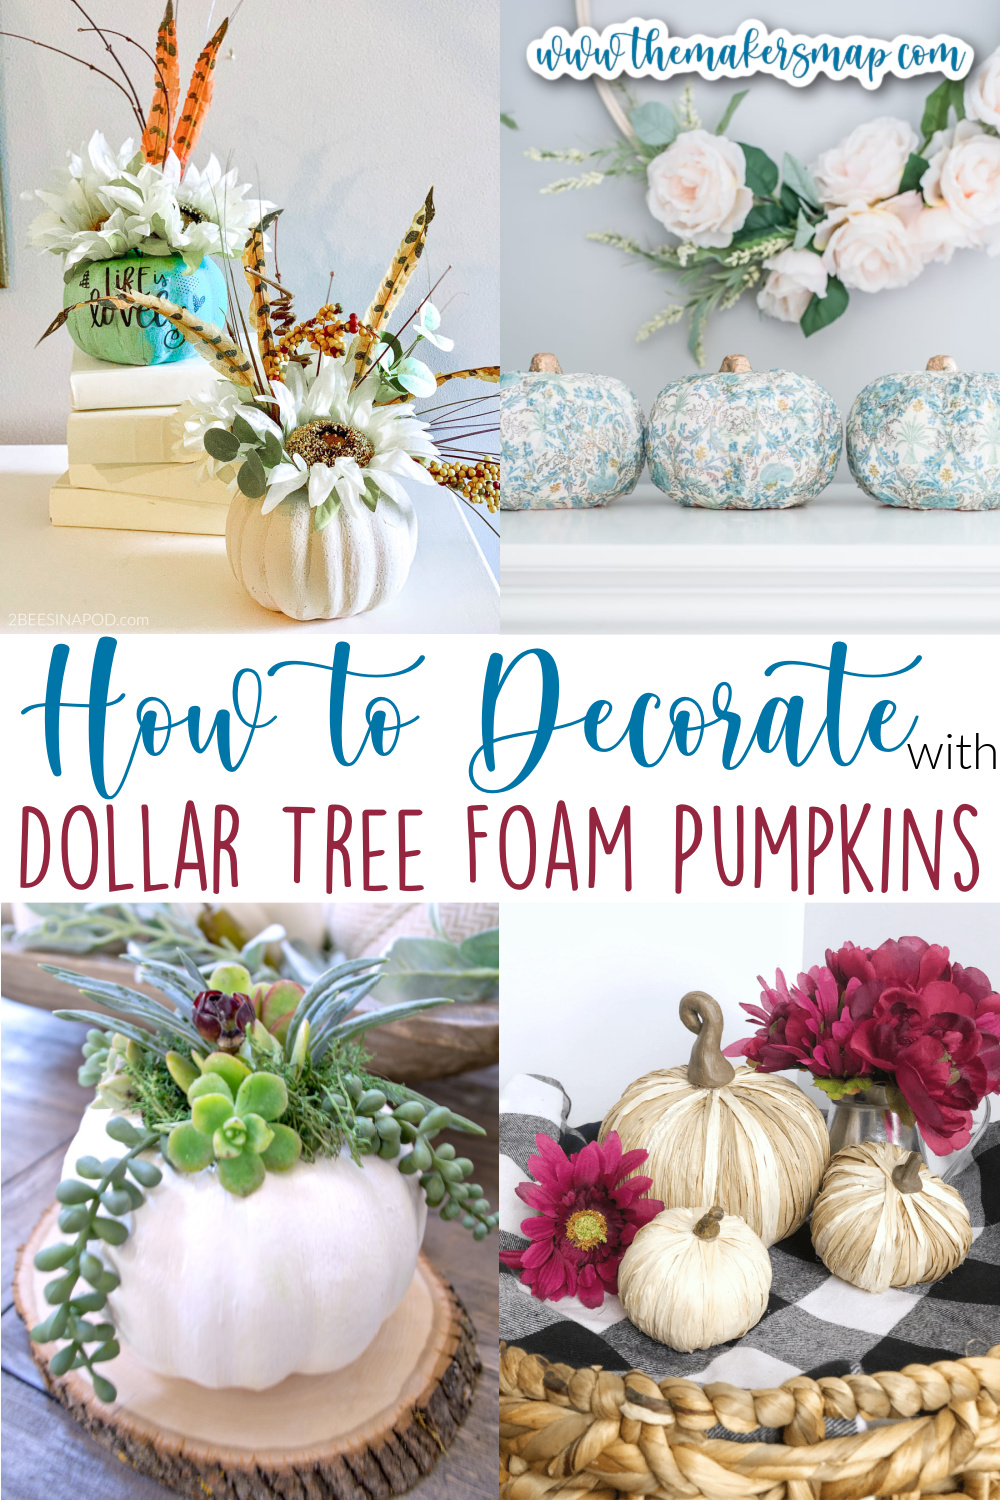 How to Decorate with Dollar Tree Foam Pumpkins